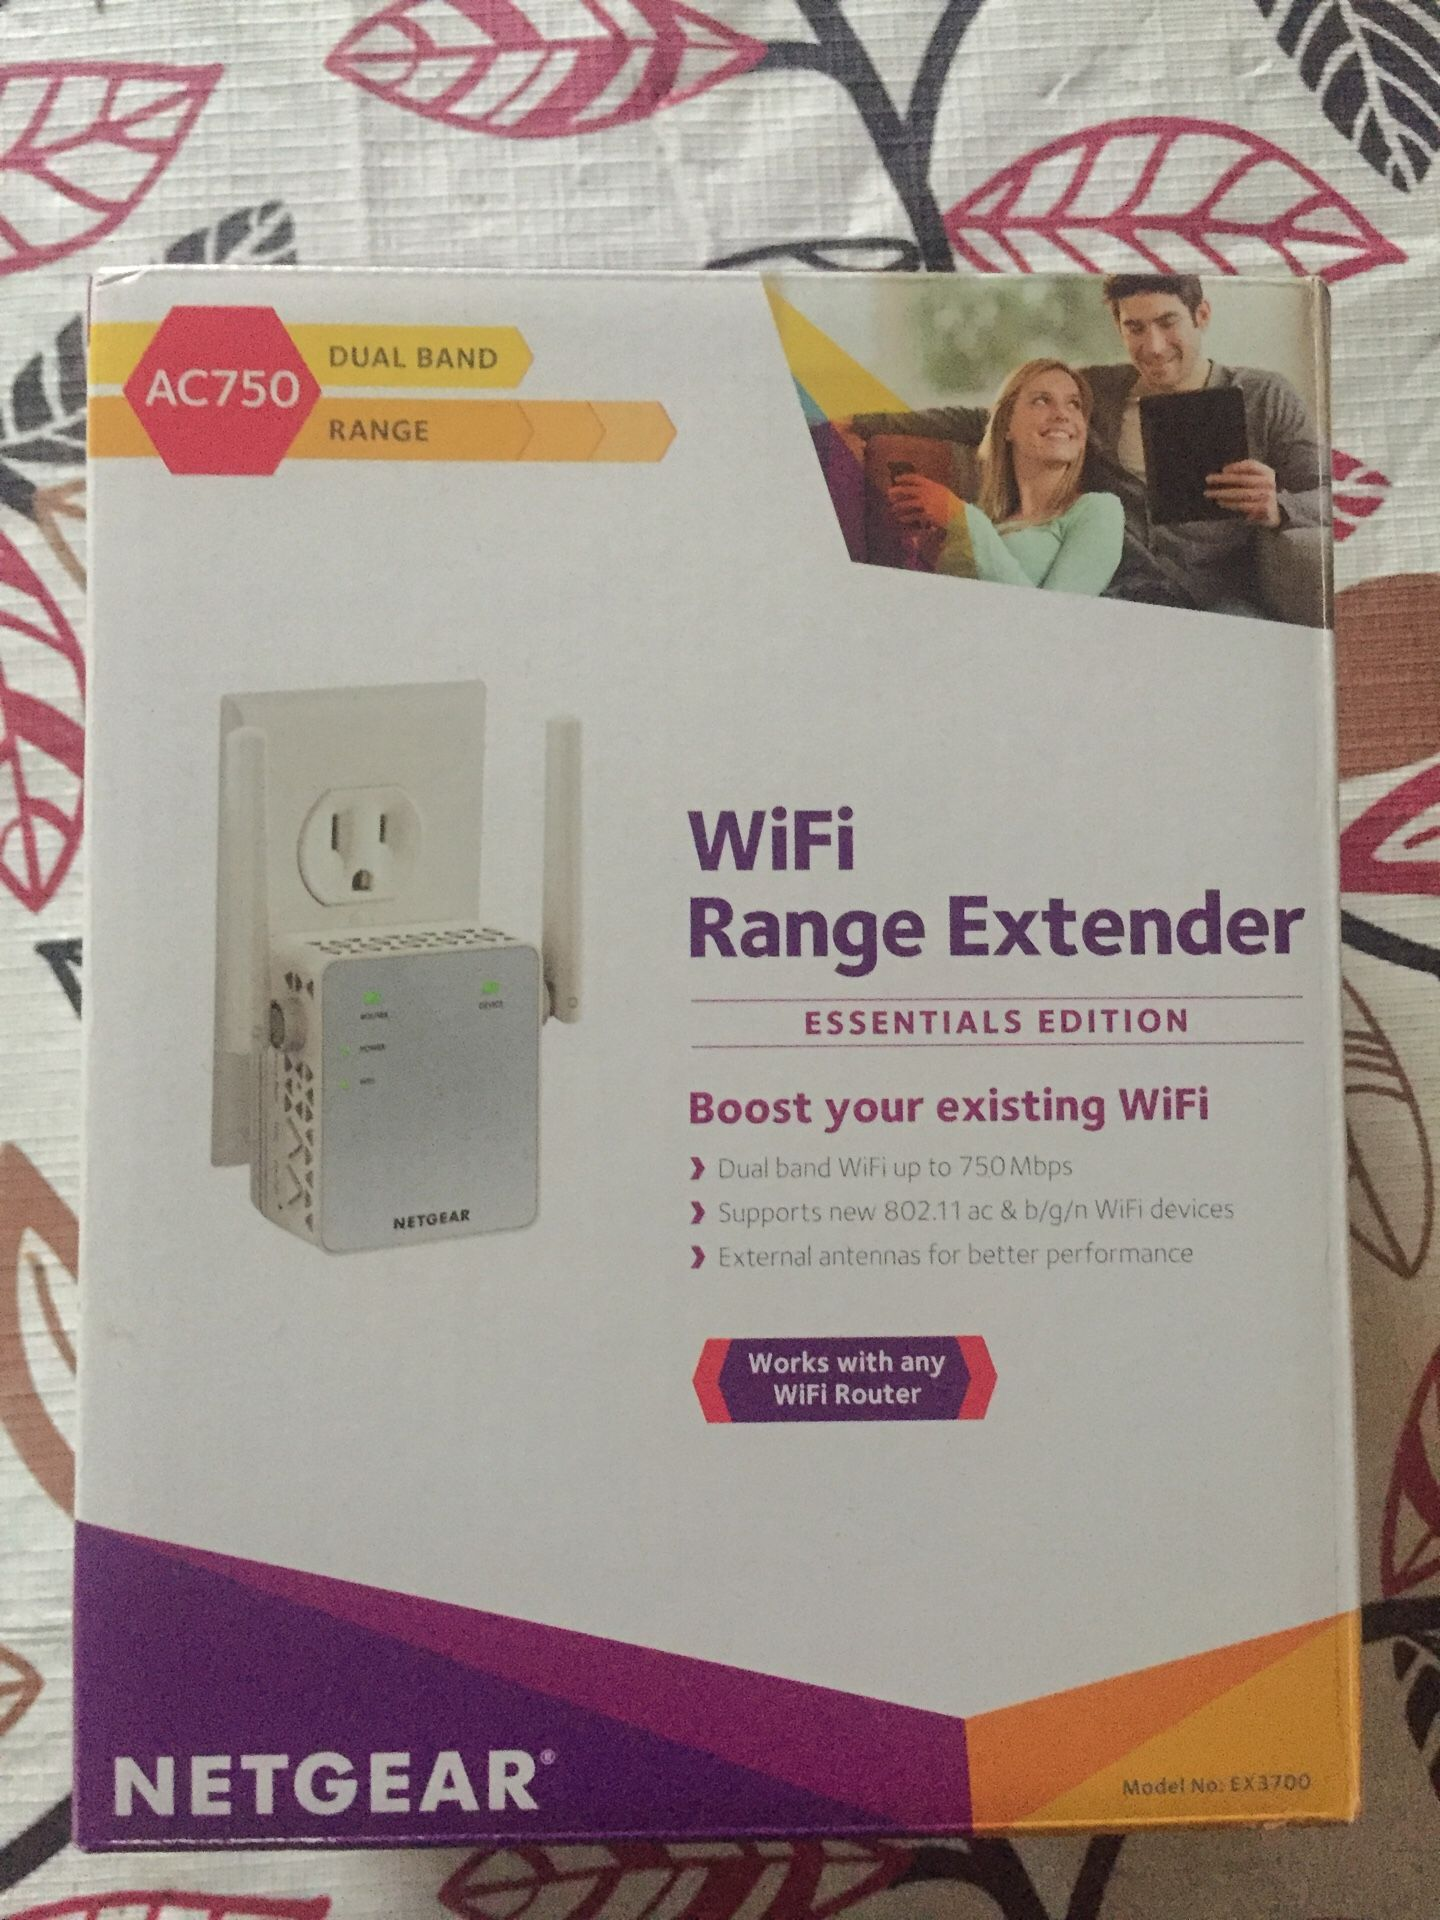 NETGEAR WiFi Range Extender AC750 Dual Band WiFi coverage up to 750Mbps (EX3700)